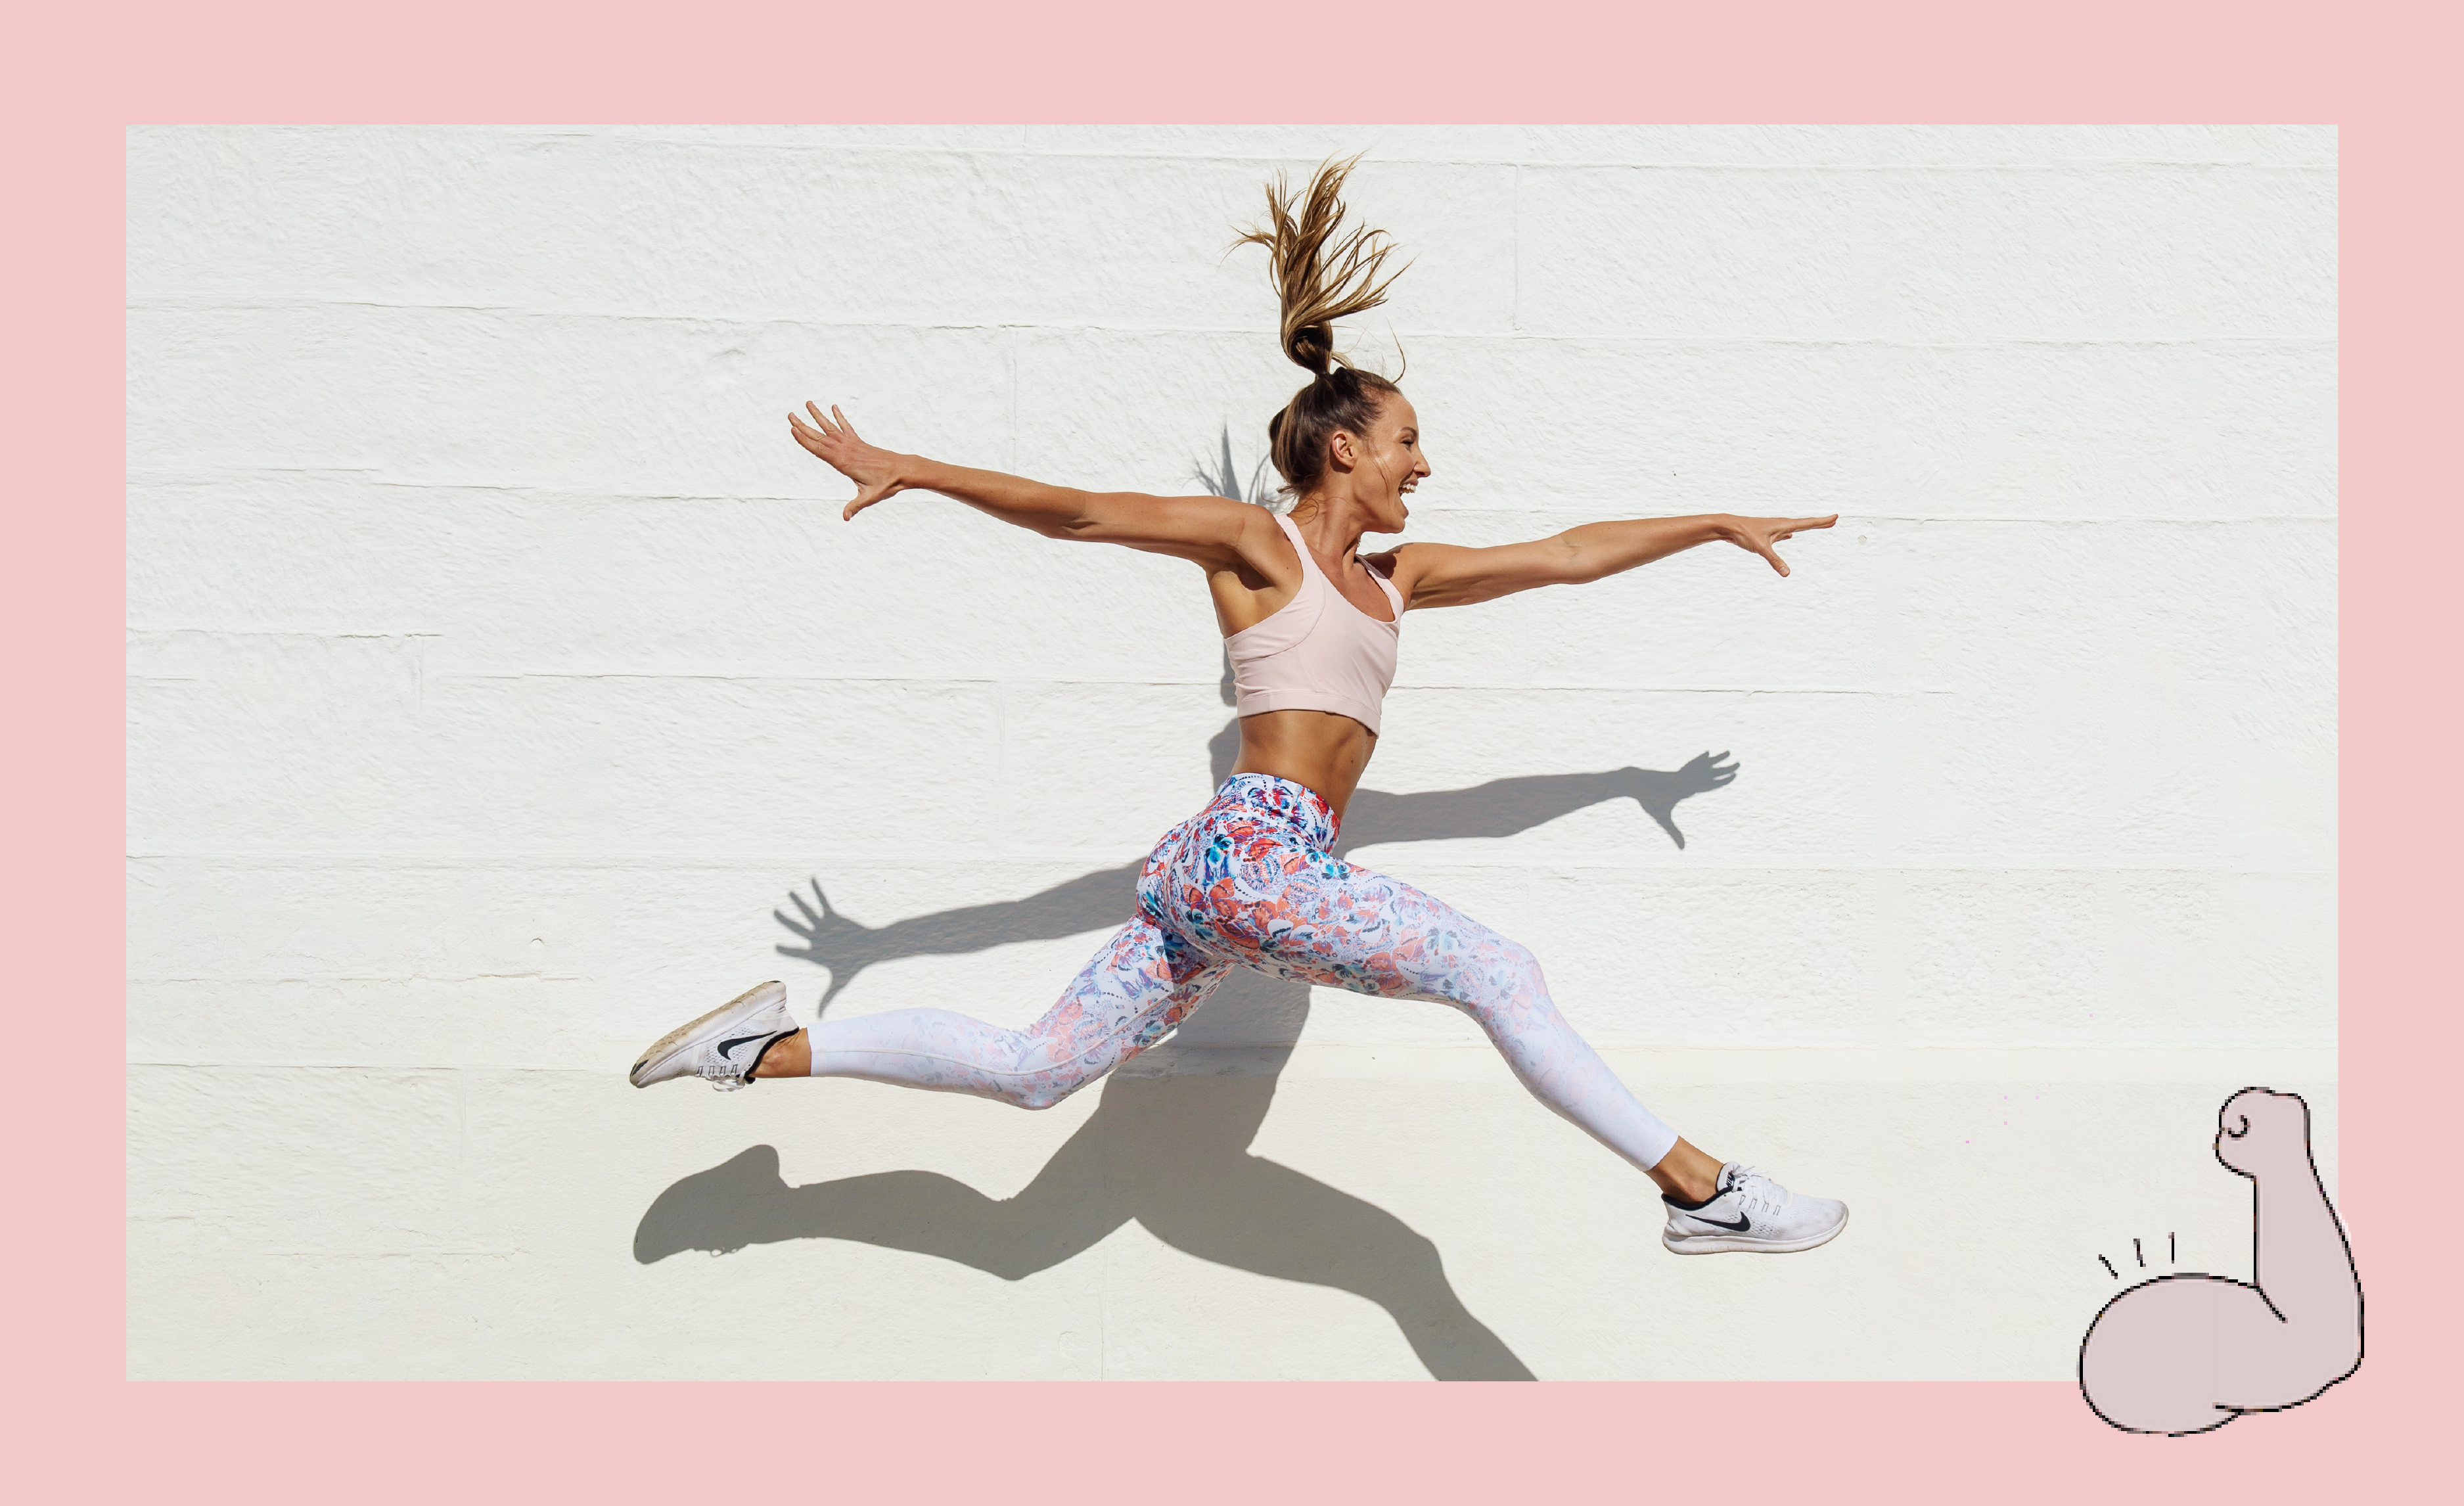 Exercise. Is It Safe During IVF and in Your First Trimester?